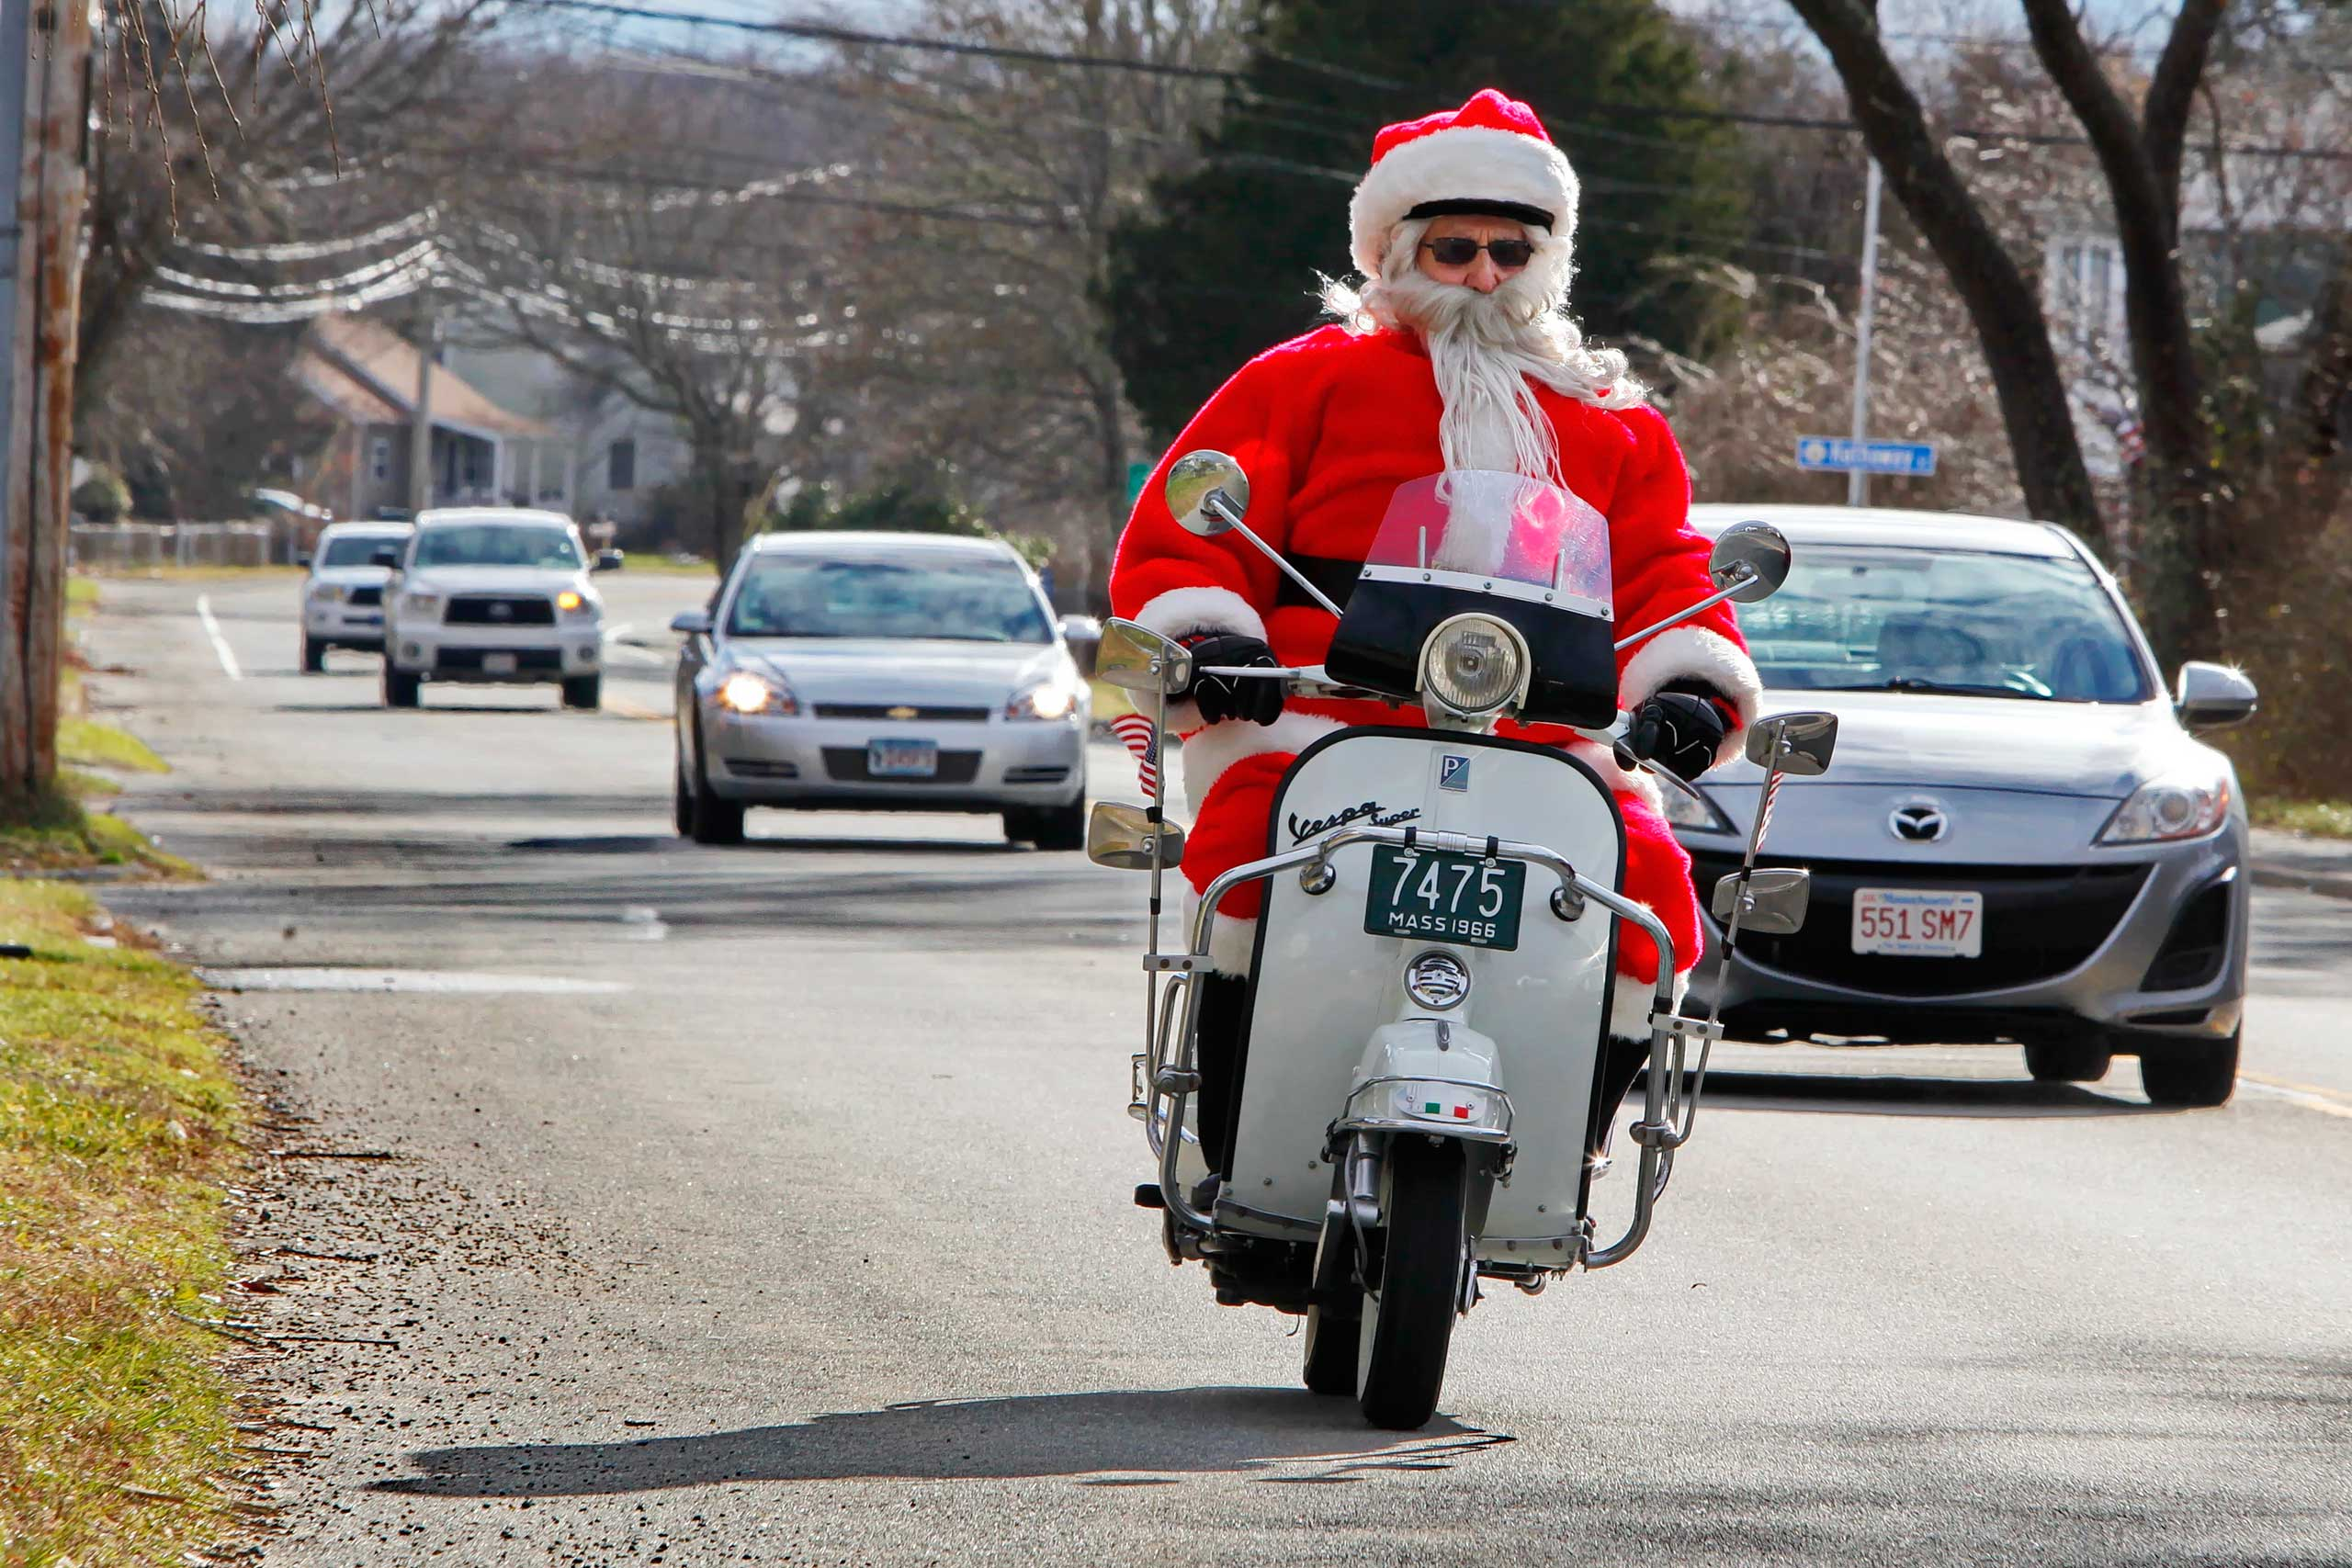 Gene Desrosiers dressed as Santa Claus rides his scooter down on Dec. 19, 2014 in Fairhaven, Mass.